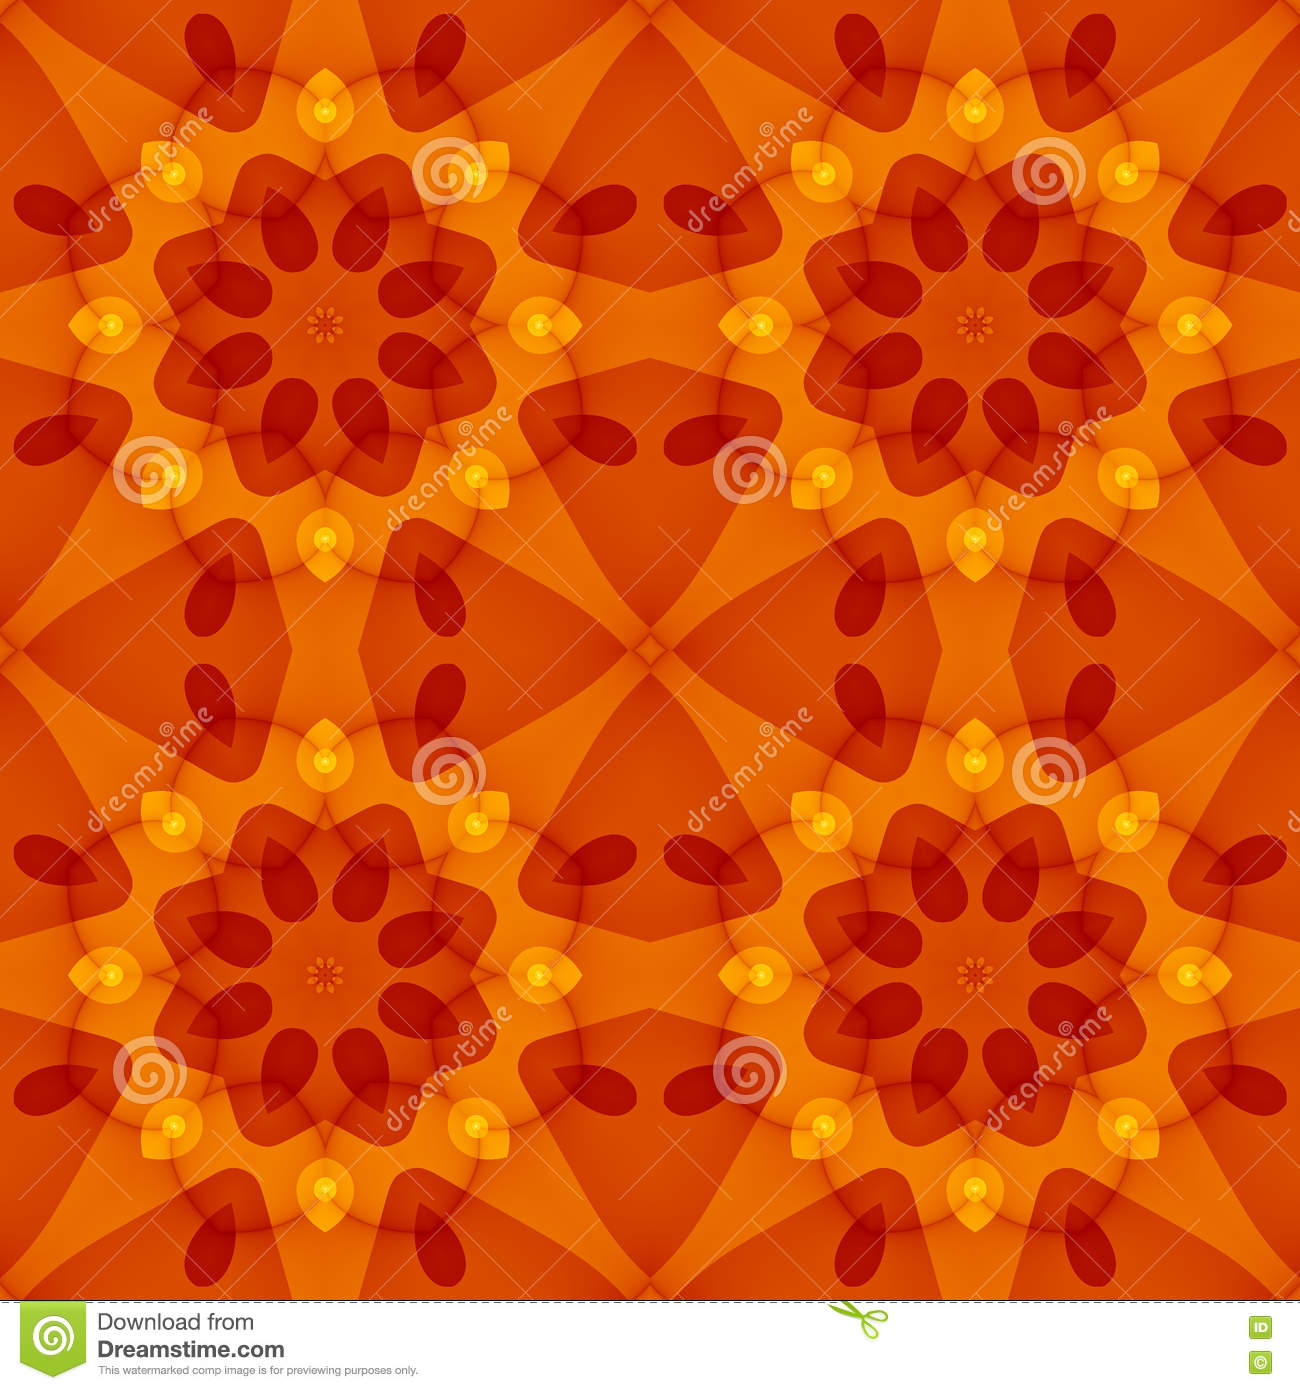 Brown bed sheet textures - Seamless Texture With A Warm Orange Red Floral Pattern Stock Illustration